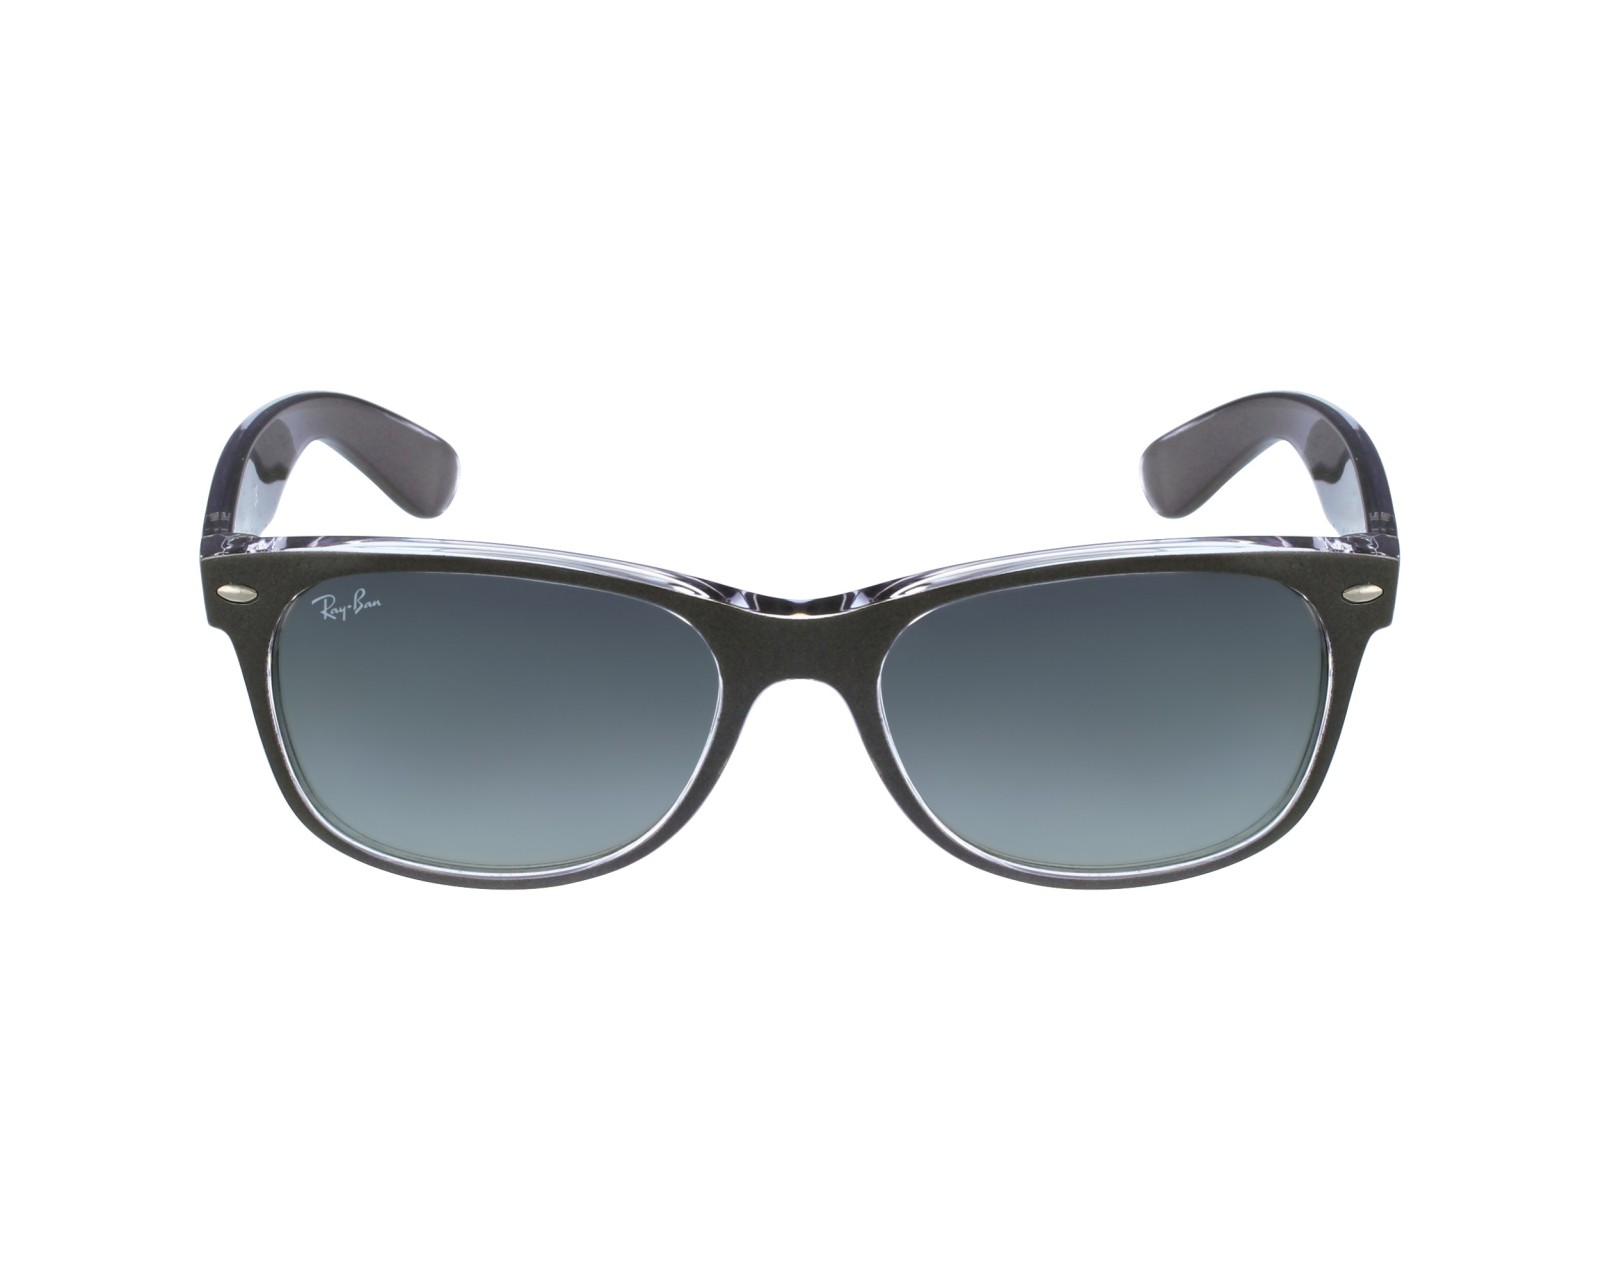 8ff9da655a69 Sunglasses Ray-Ban RB-2132 614371 52-18 Grey profile view